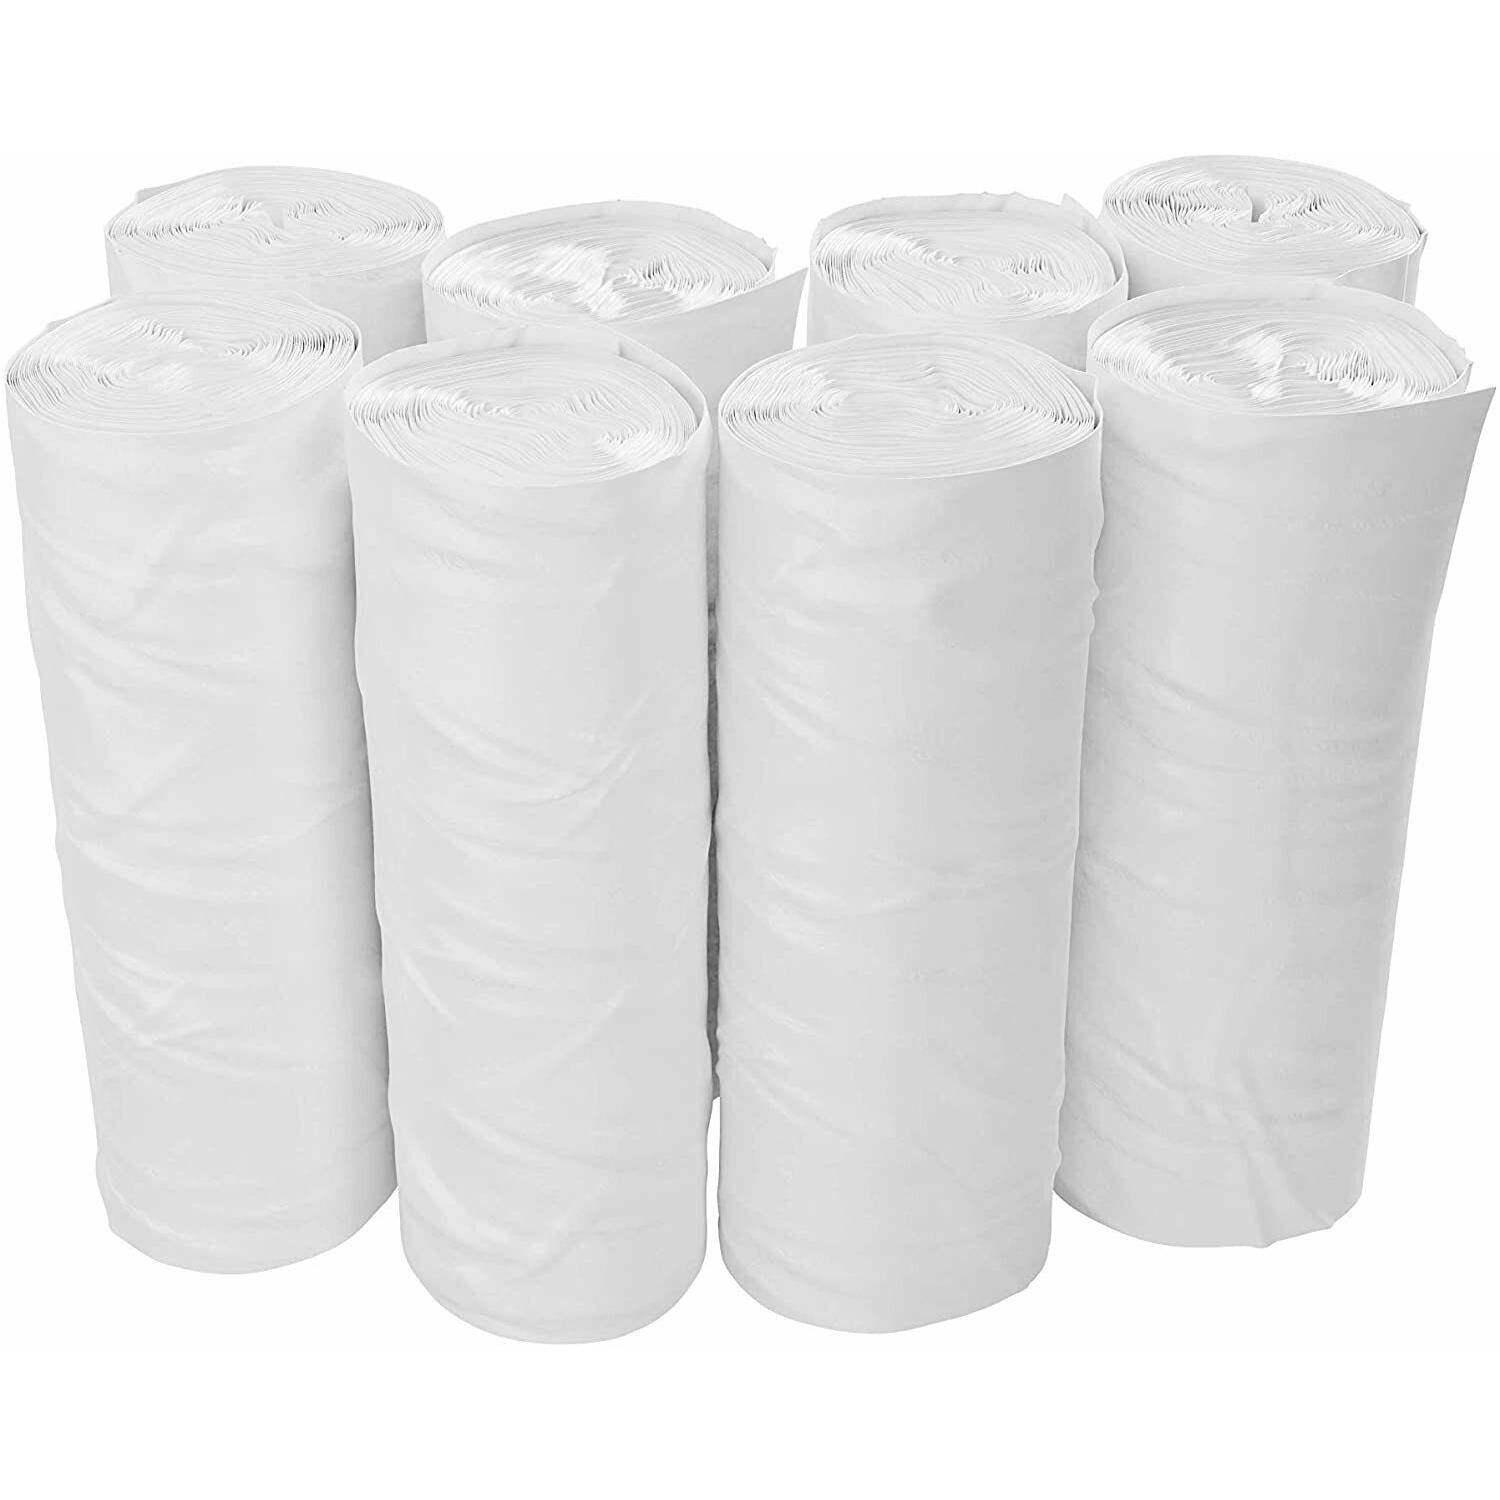 2-4 Gallon Trash Bags Small Clear Garbage Bags 2 Gal - 4 Gal - (400 Count)